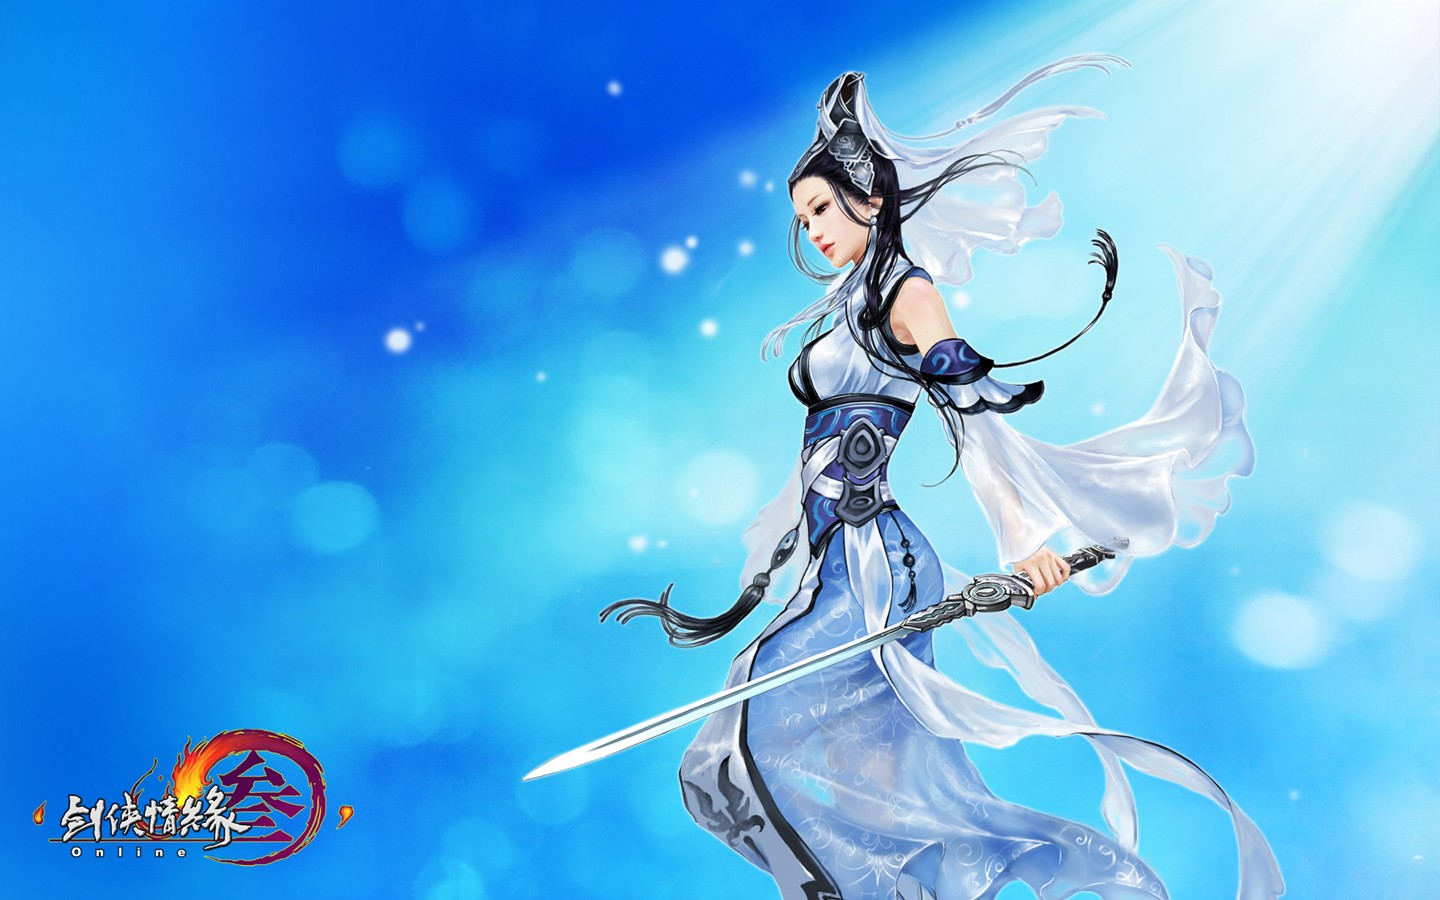 D martial arts online game wallpaper of JX 30242